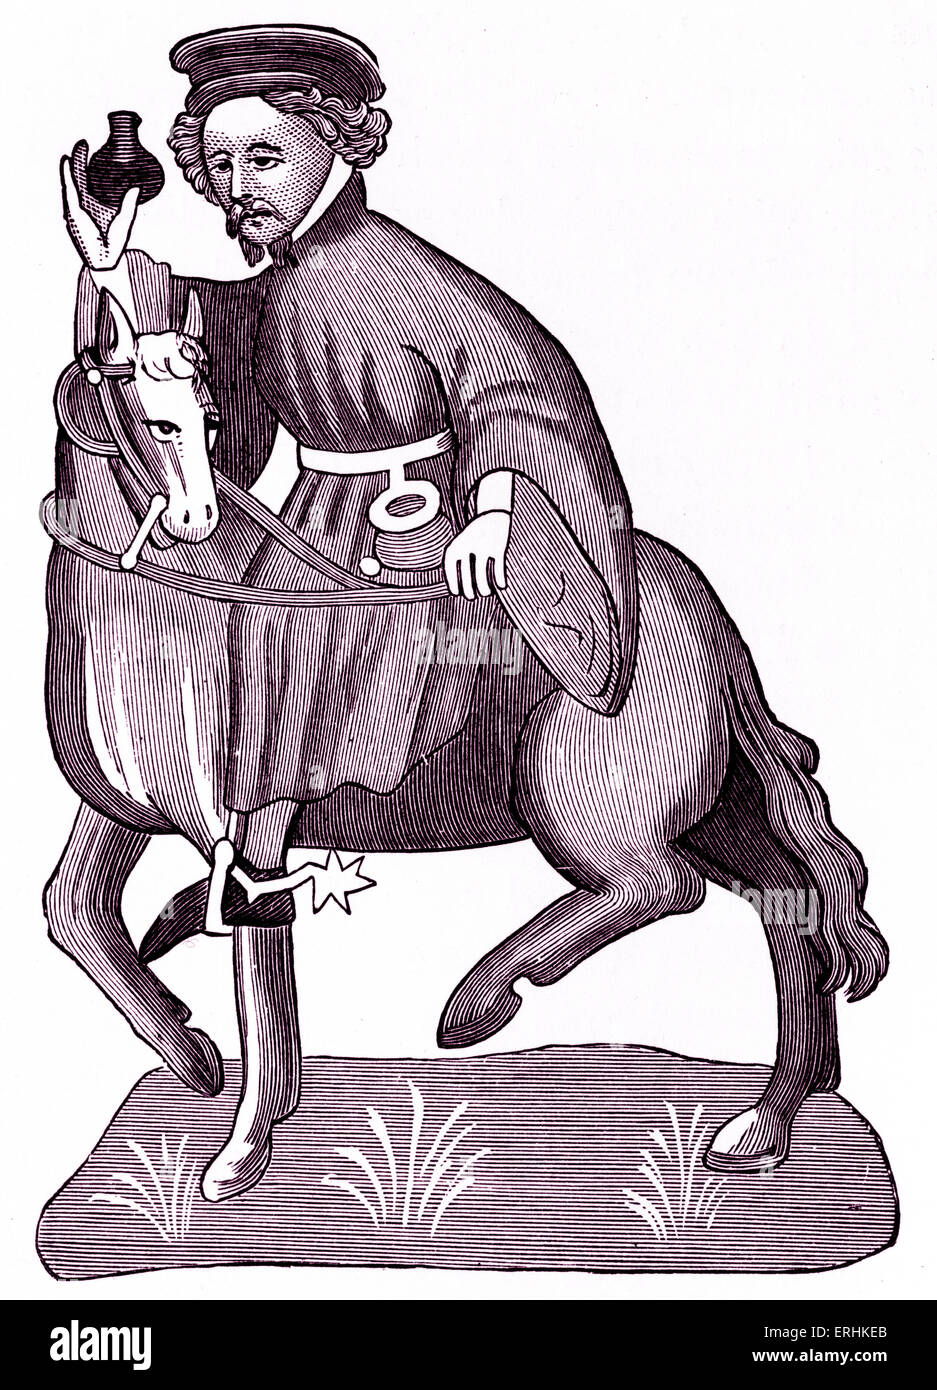 Geoffrey Chaucer ' s Canterbury Tales - The Manciple on horseback.  English poet, c. 1343-1400. Ellesemere manuscript Stock Photo